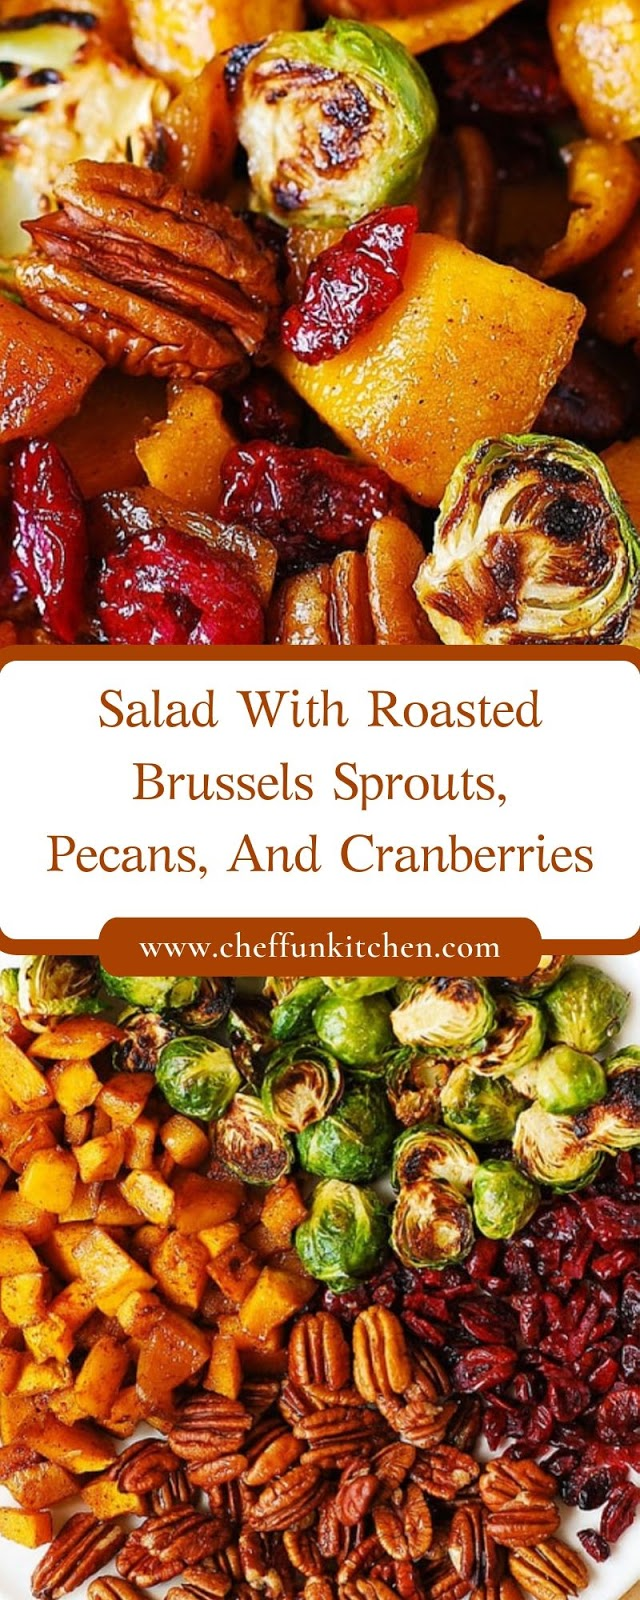 Salad With Roasted Brussels Sprouts, Pecans, And Cranberries